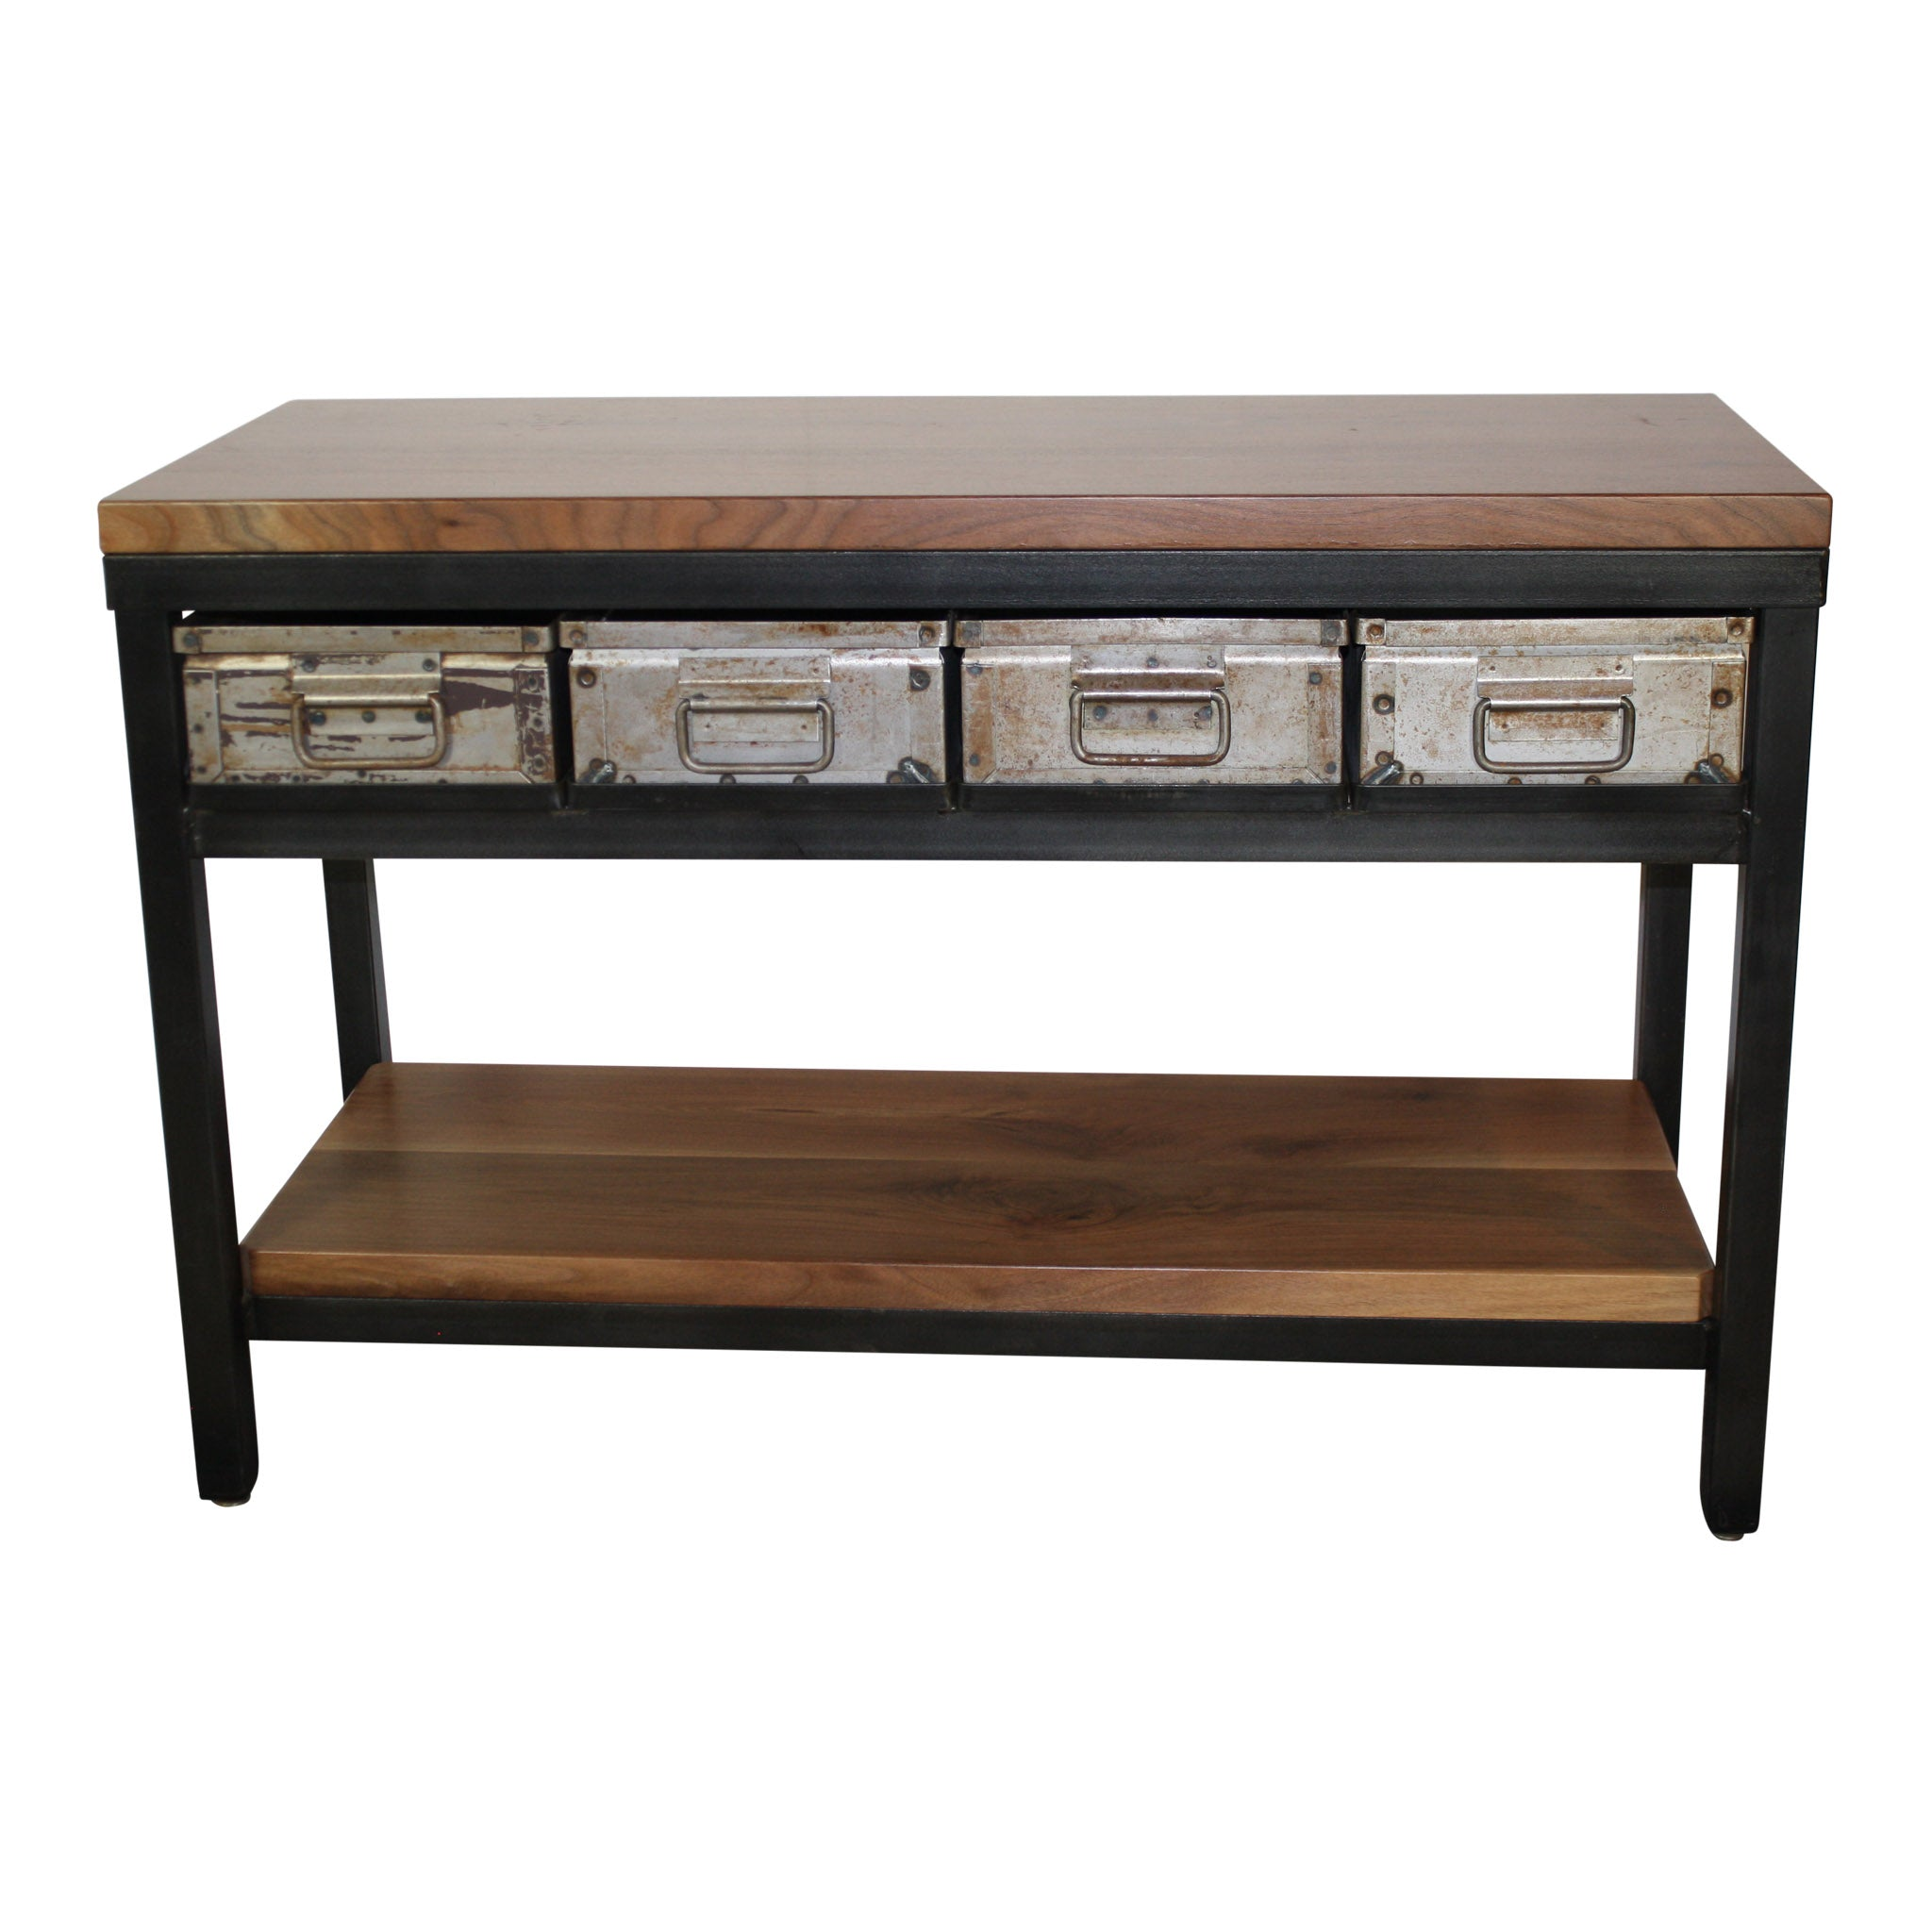 Industrial Console Table with Steel Bins